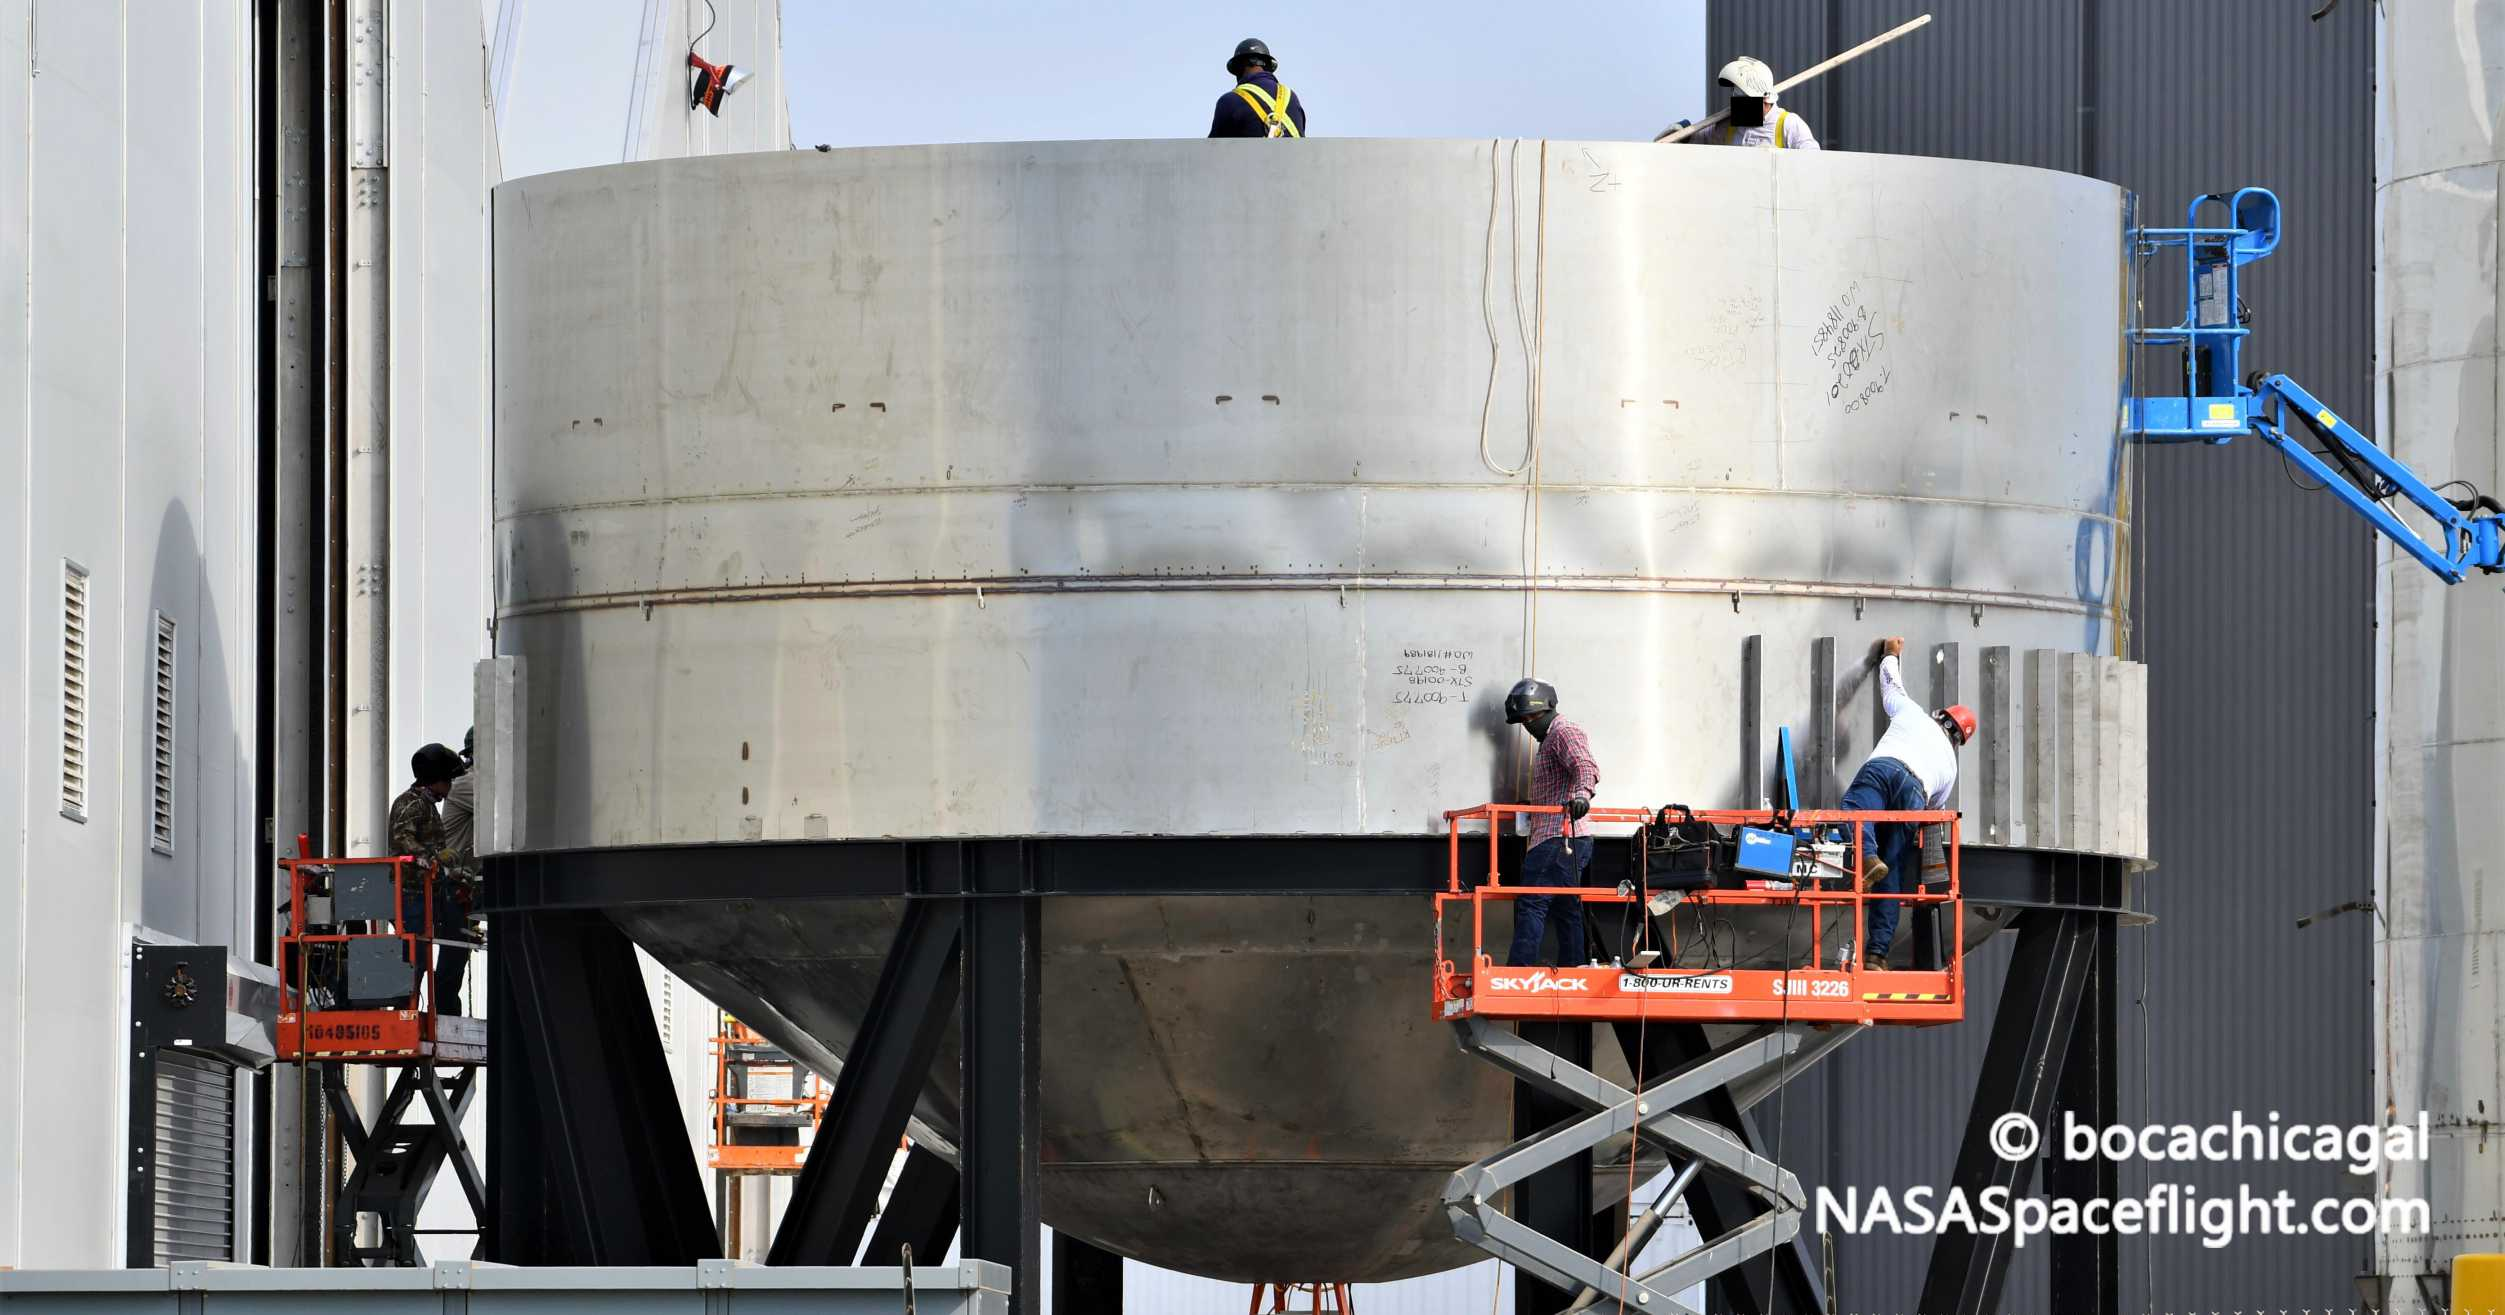 Starship Boca Chica 061020 (NASASpaceflight – bocachicagal) SN7 test tank 3 crop (c)